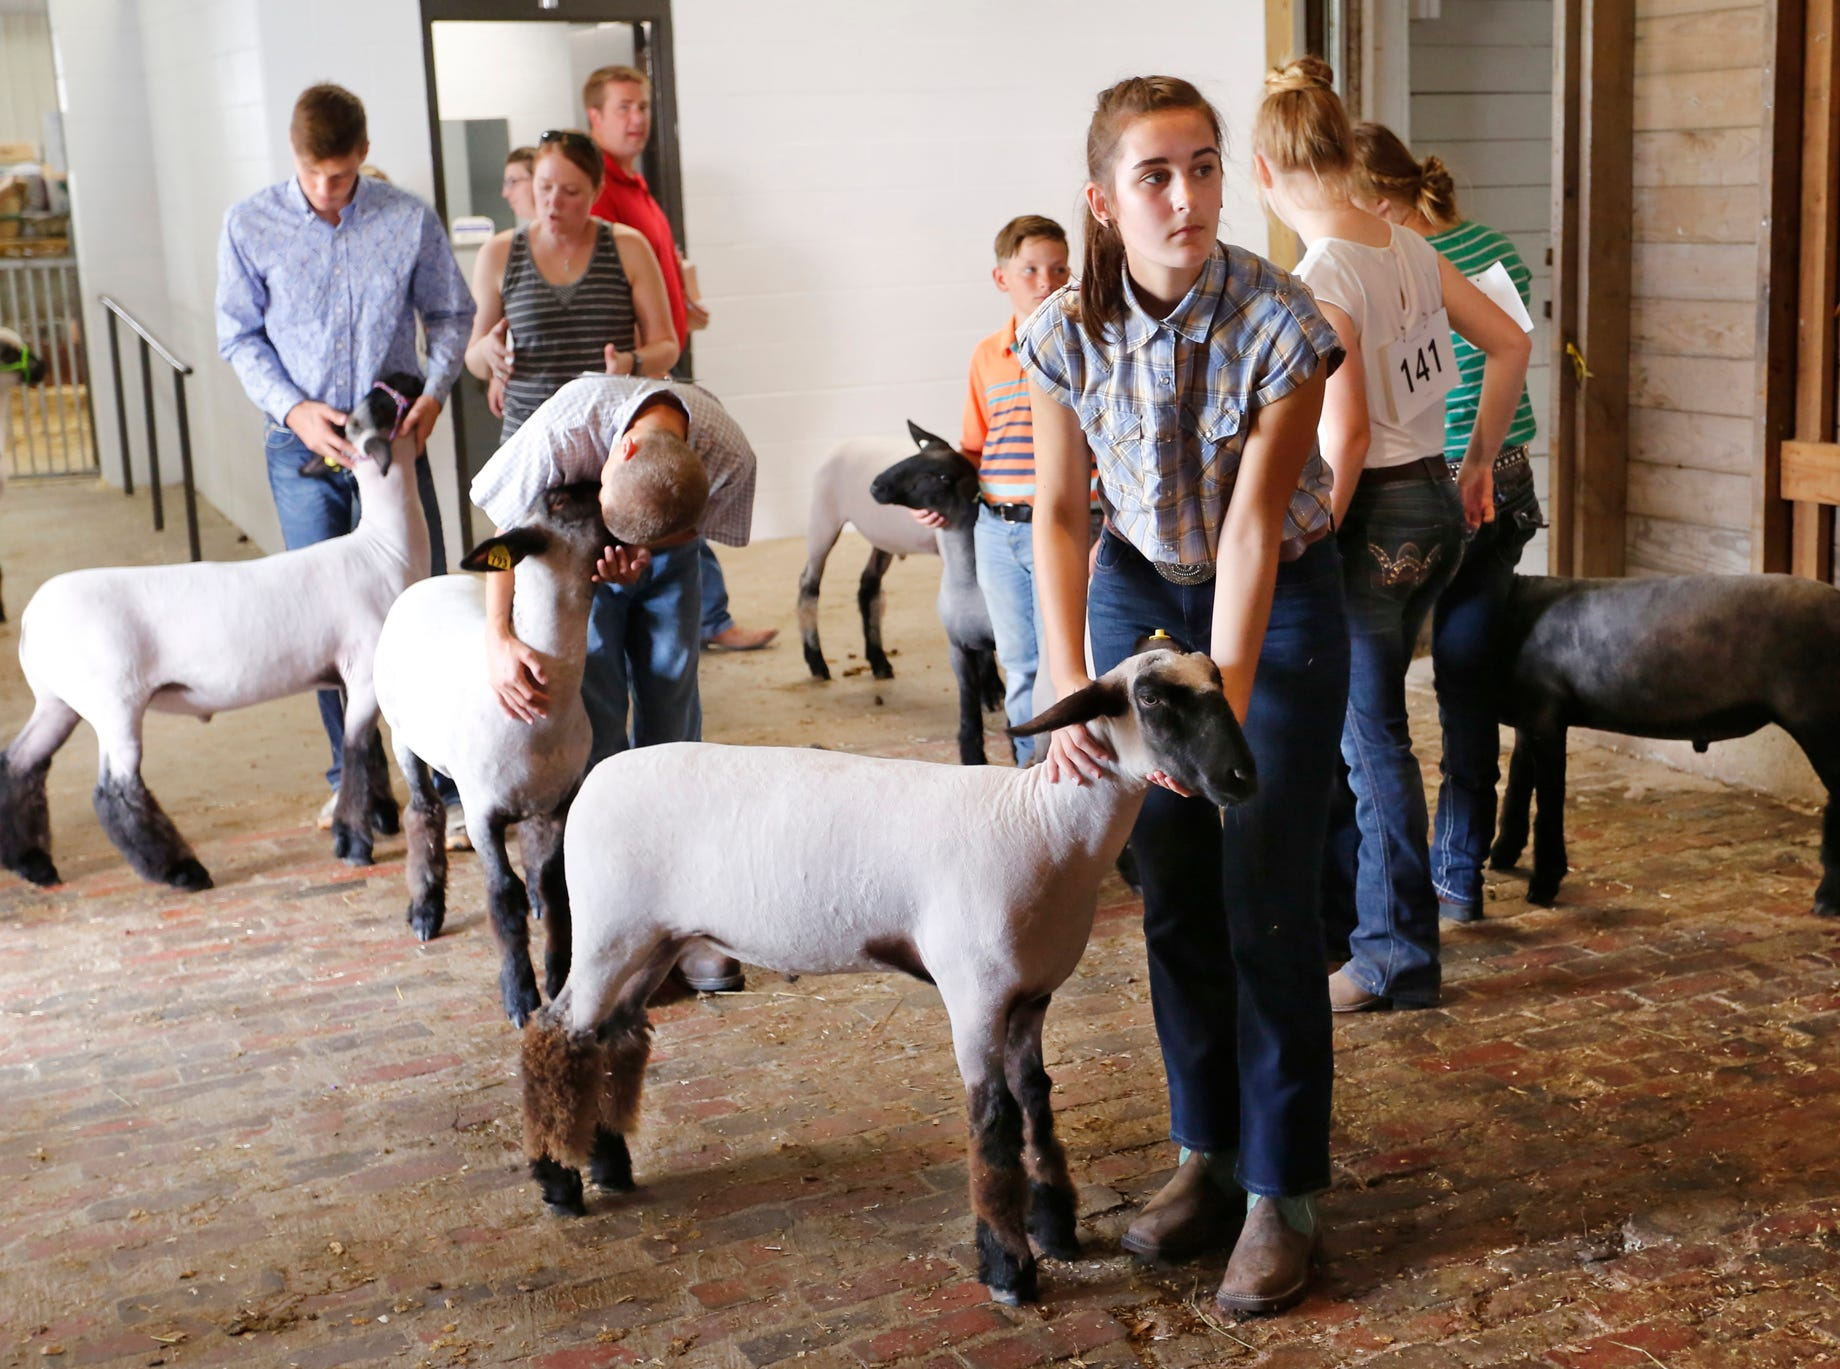 Contestants wait to show their sheep at the Tippecanoe County 4-H Fair Monday, July 23, 2018, in Lafayette.